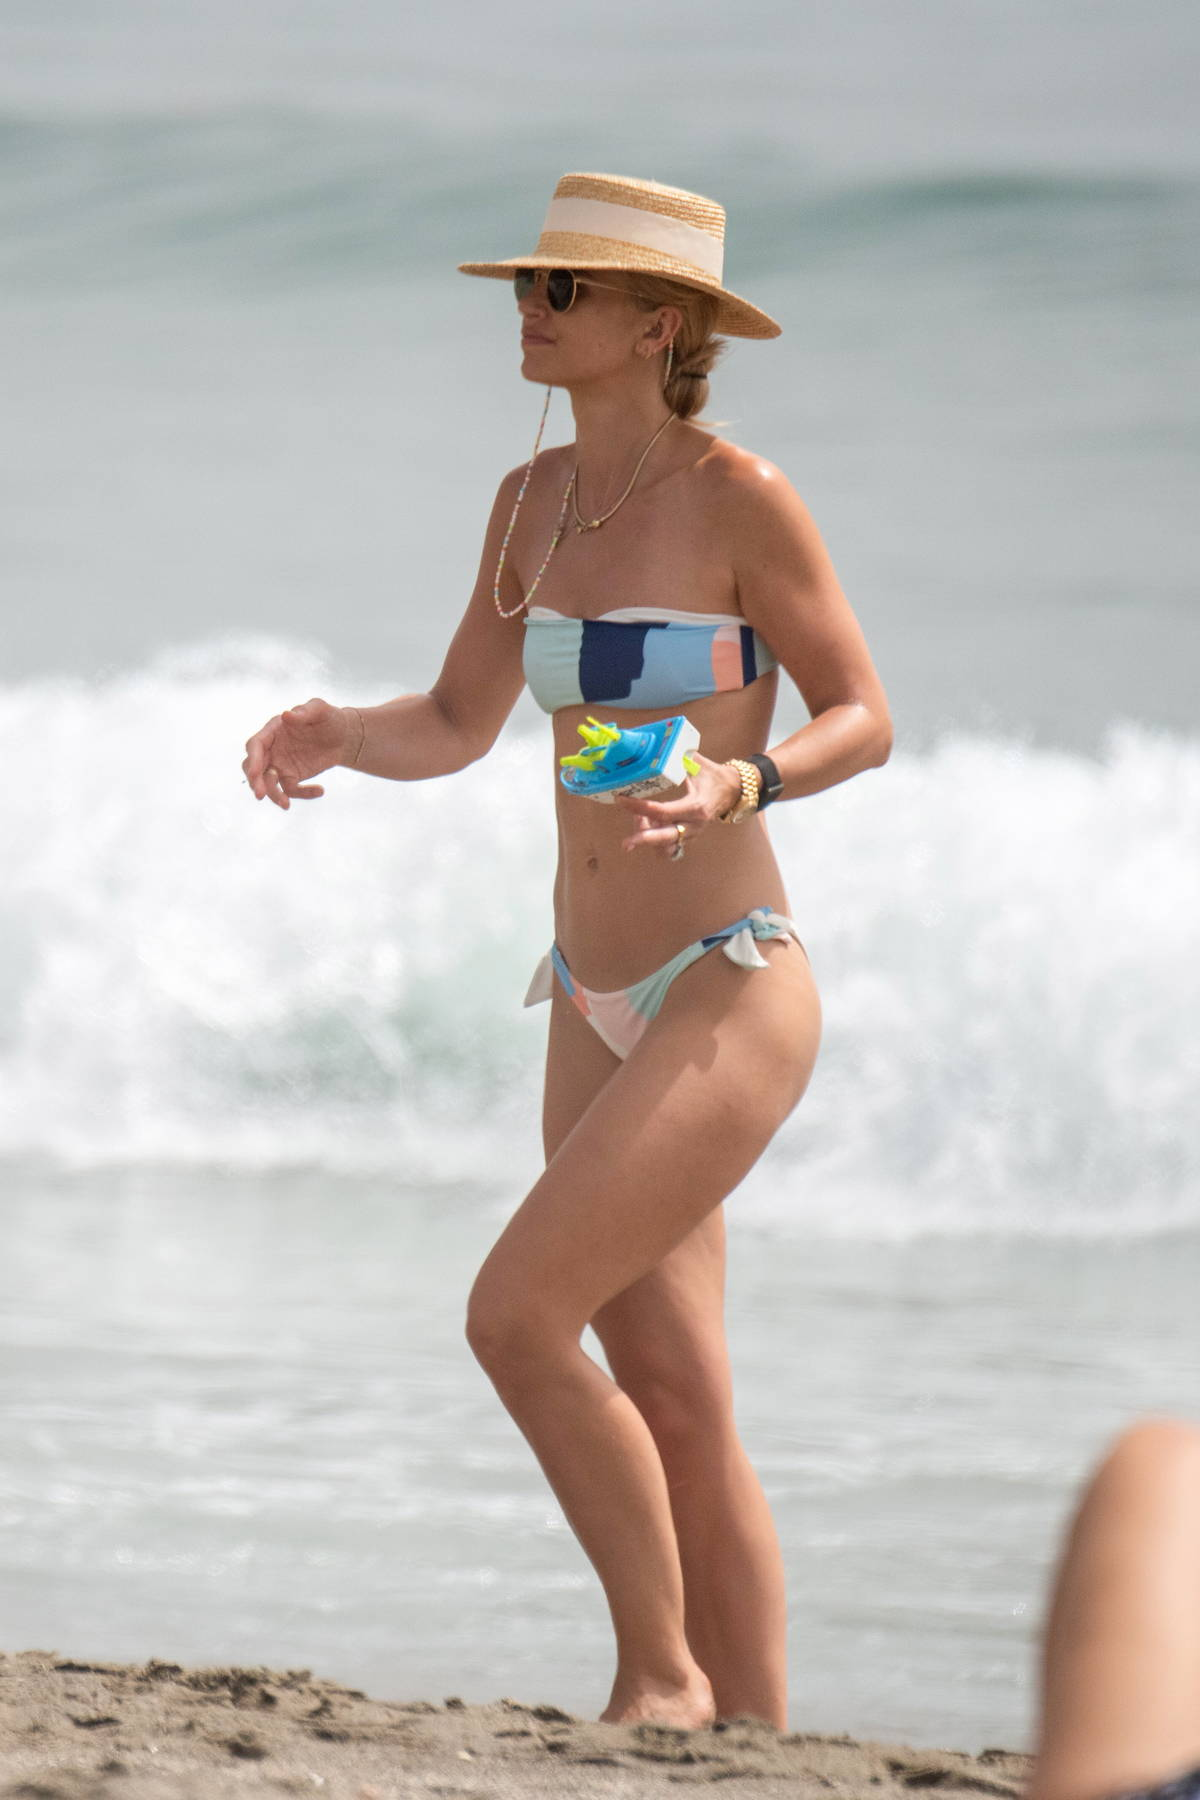 Vogue Williams spotted in a bikini while on holiday with her family in Costa del Sol, Spain